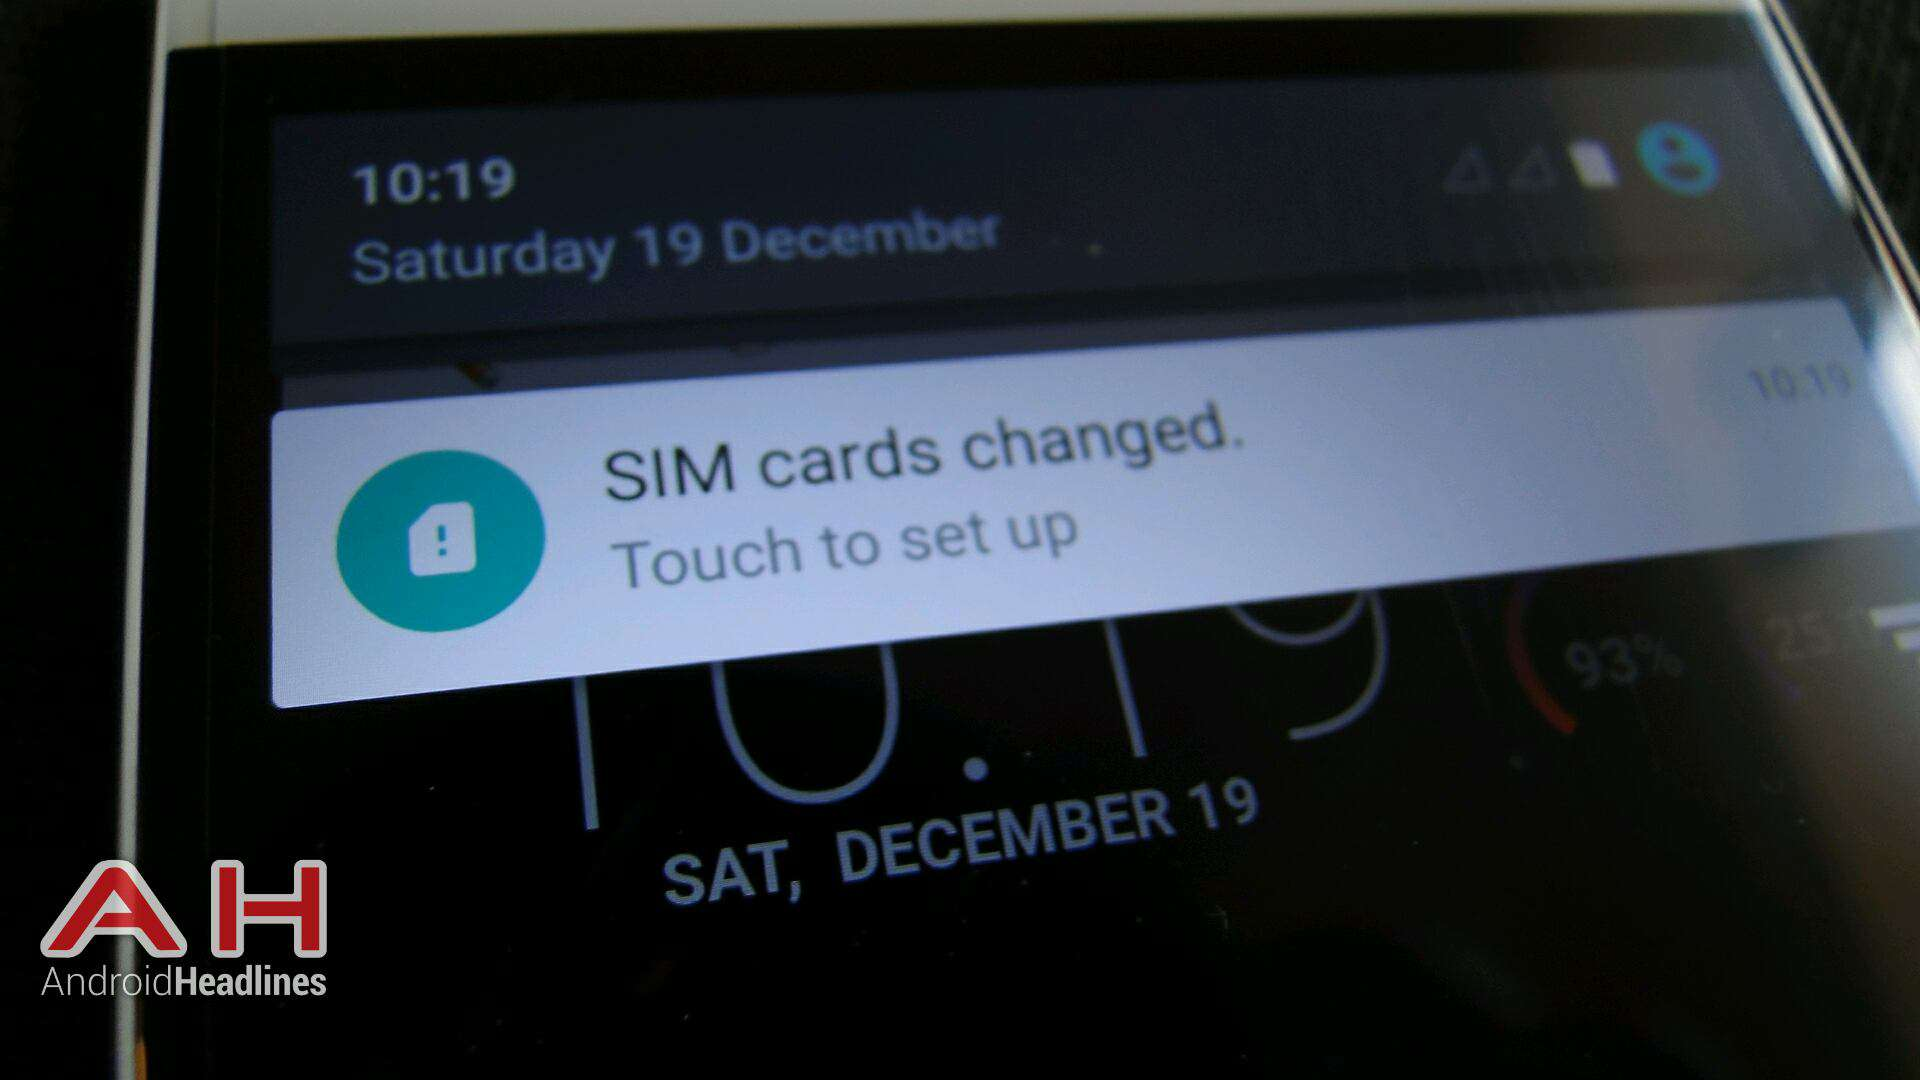 AH Cubot X17 4G SIMs Changed Message